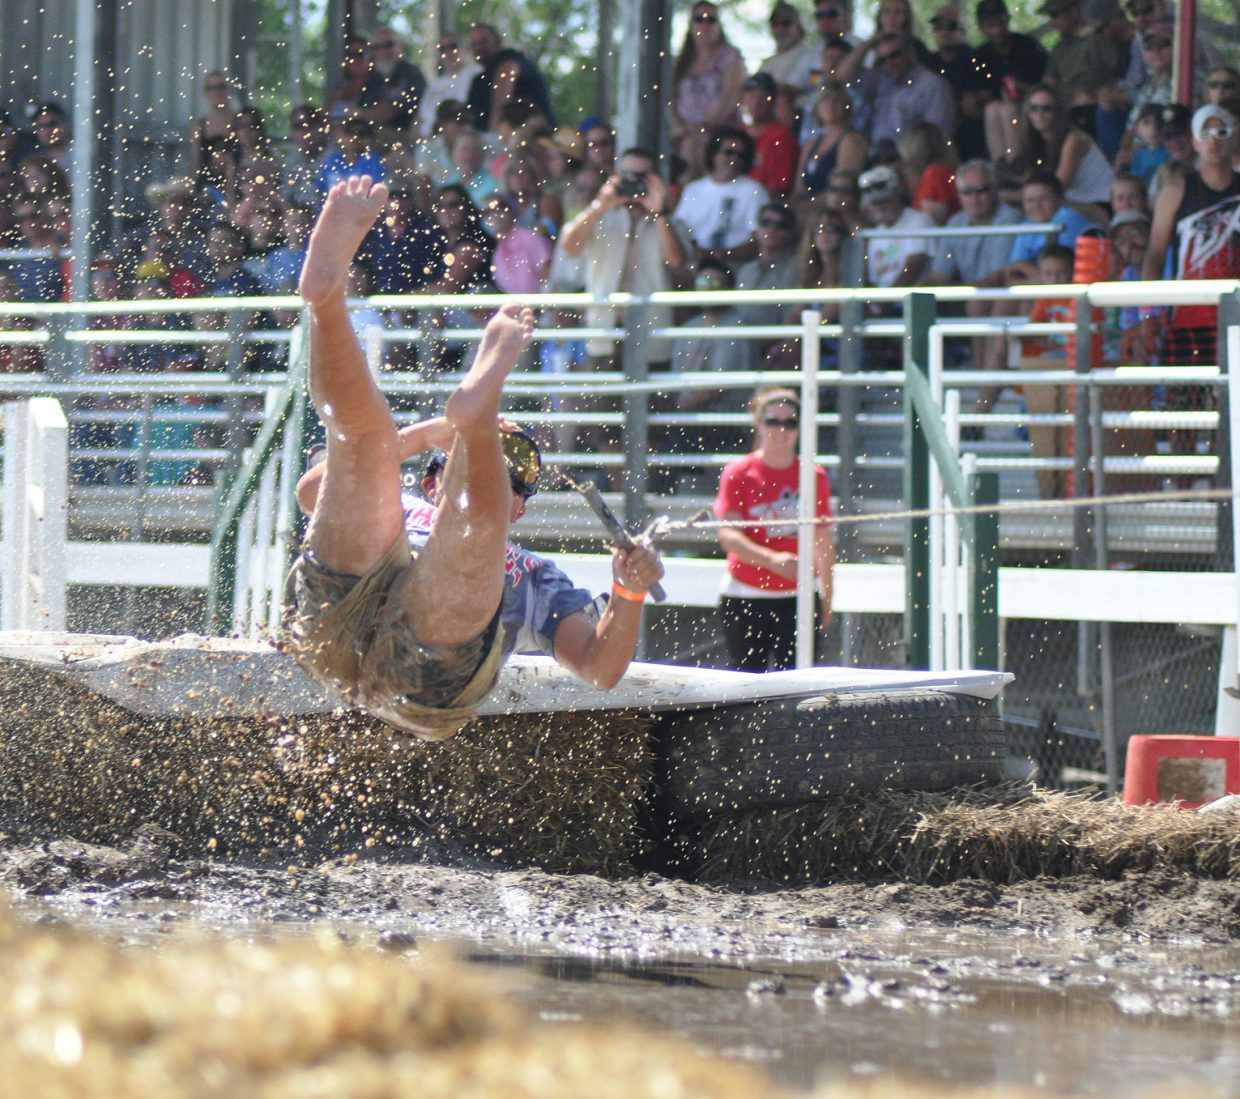 A mudsurfer at the 2014 Routt County RedneX Games in Hayden, Colorado. Submitted by: Wendy Lind